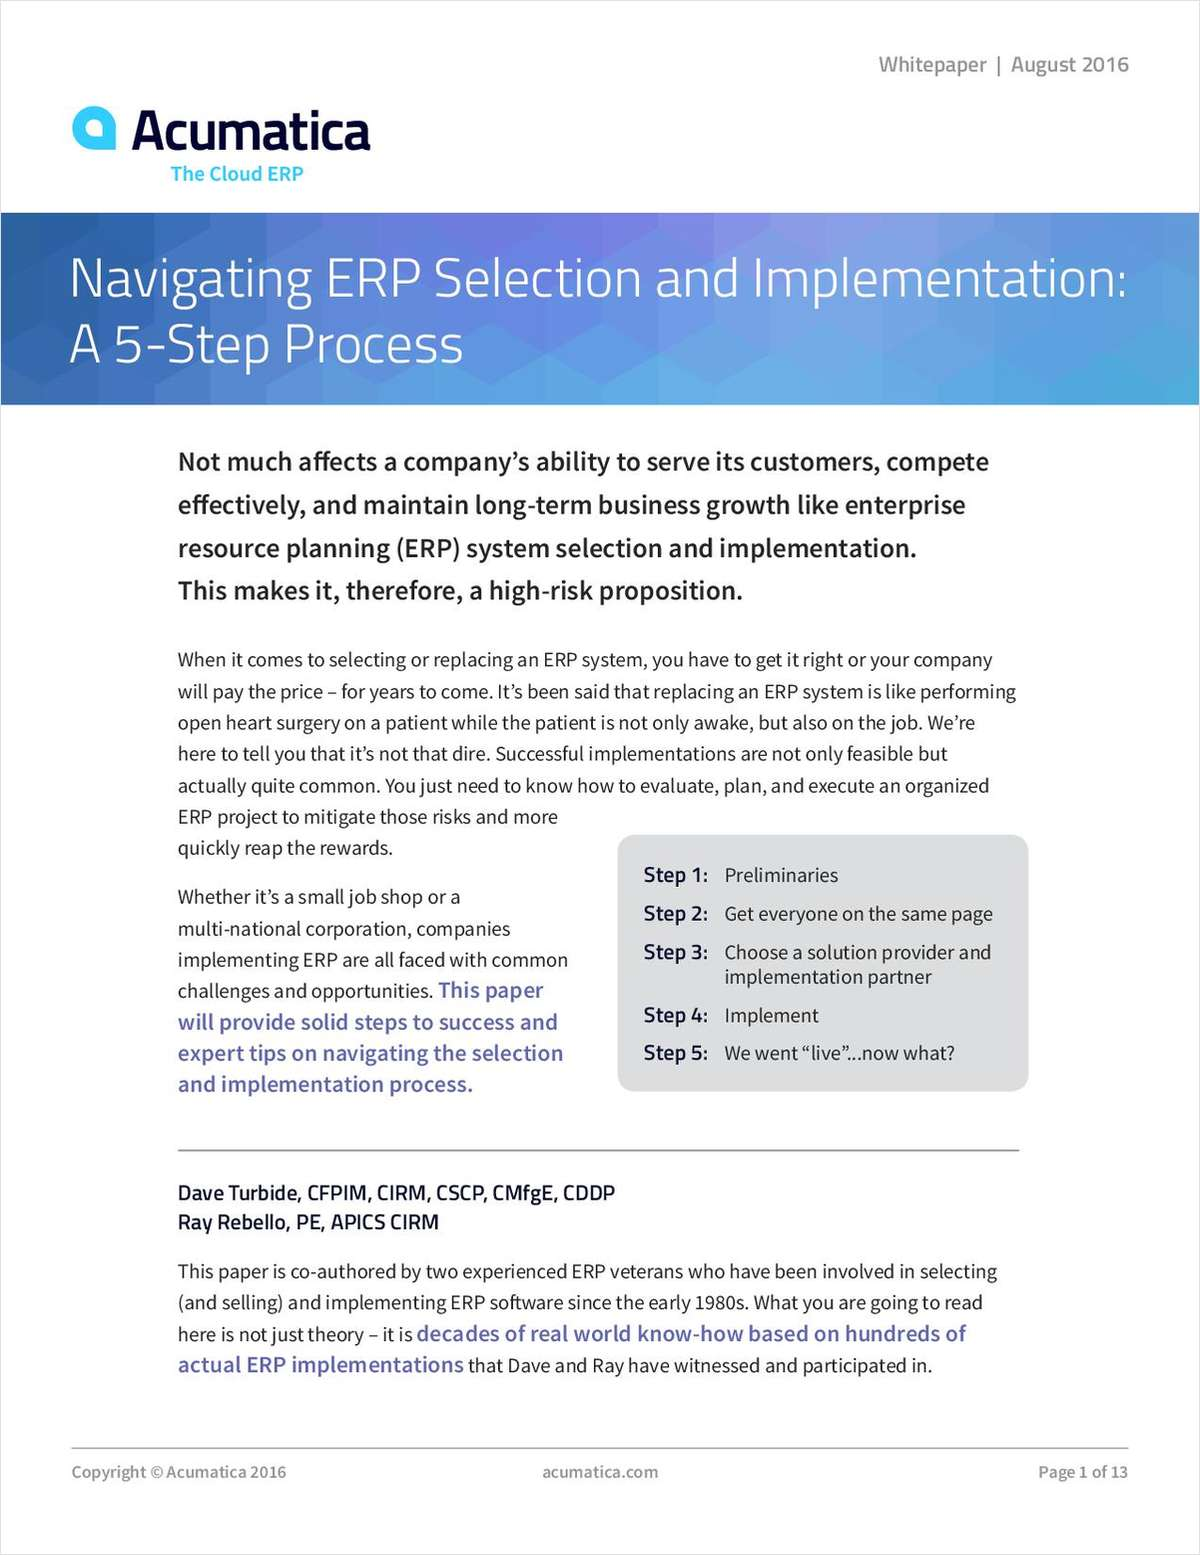 Navigating ERP Selection and Implementation